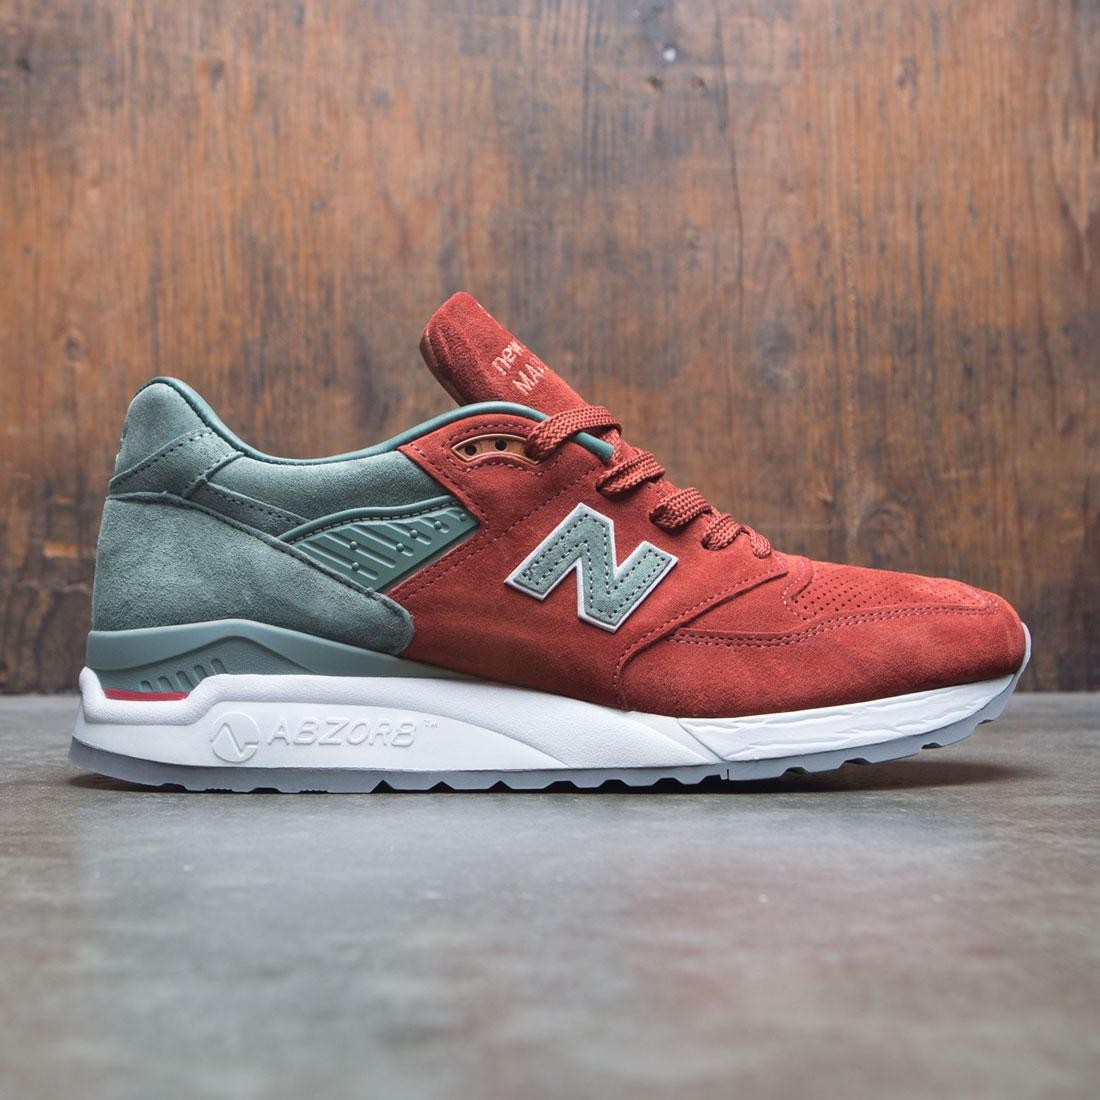 the best attitude a3a9b 5b740 New Balance x Concepts Men 998 City Rivals Boston M998BMG - Made In USA  (red / olive)